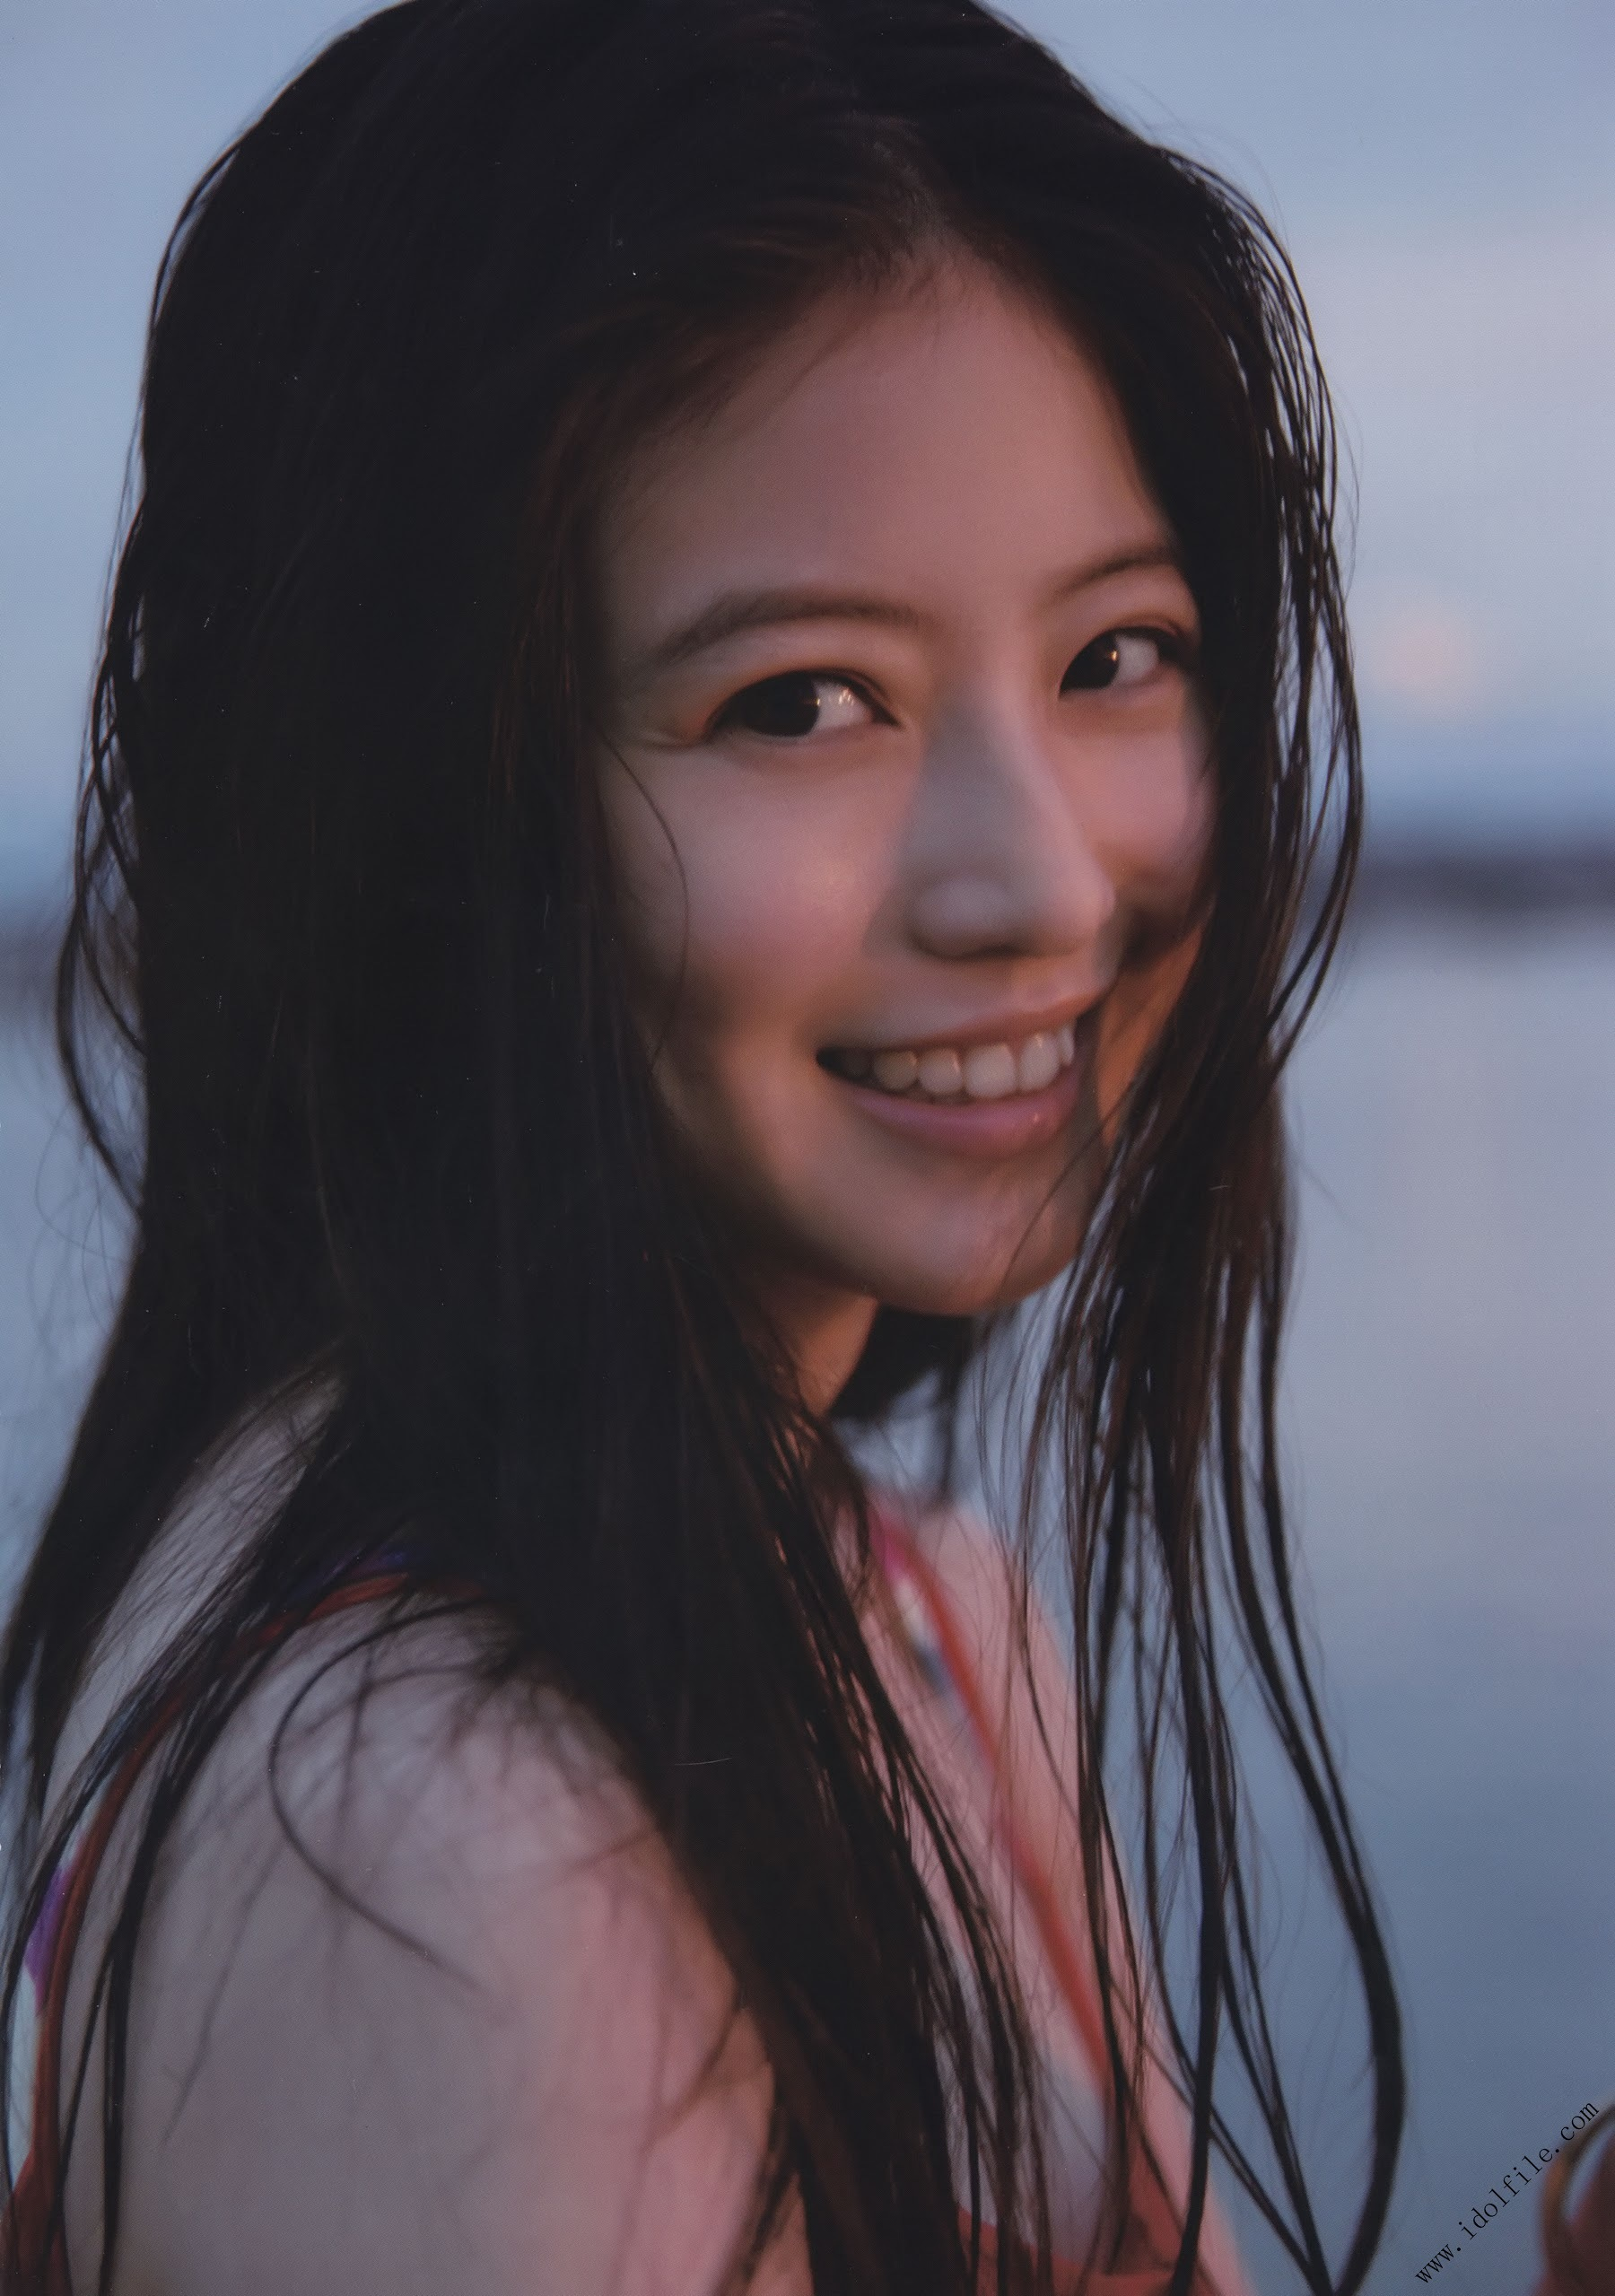 Pretty and beautiful, 22 years old and innocent Moving to the next stage as an actress Mio Imada148